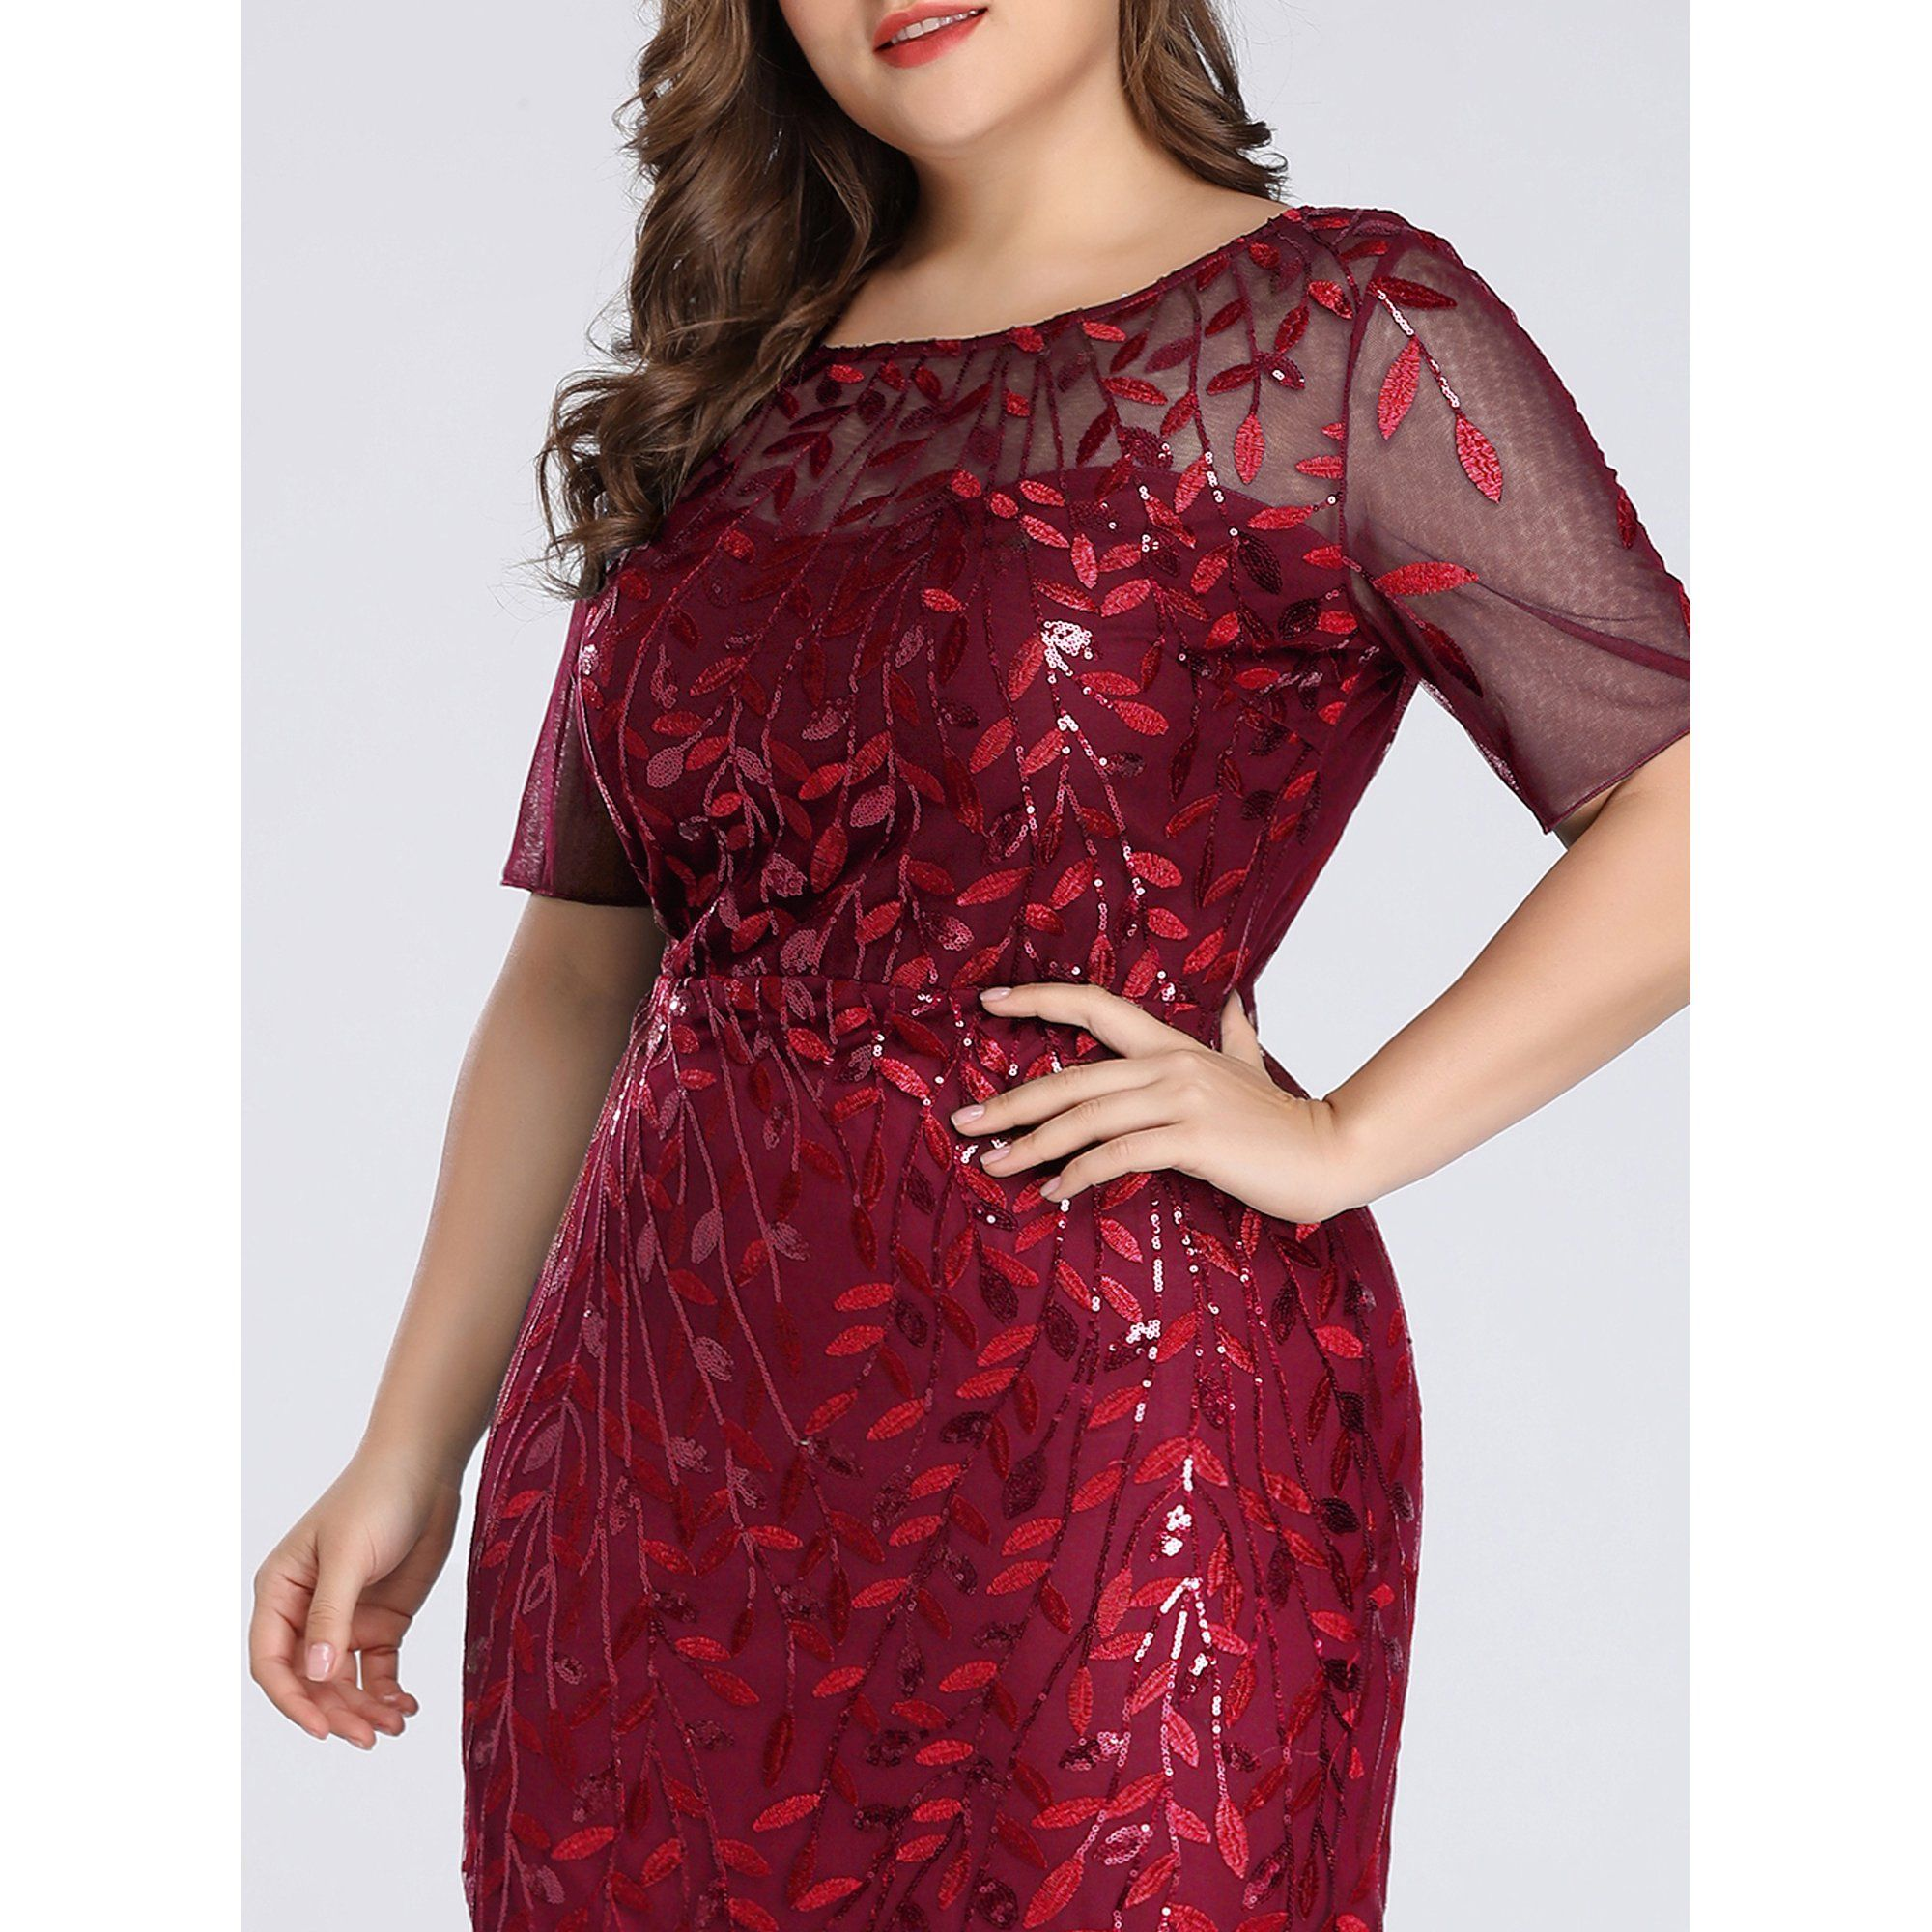 Ever Pretty Ever Pretty Womens Elegant Sequin Fishtail Long Evening Party Dresses For Women 77072 Gold Us16 Walmart Com In 2021 Mermaid Evening Dresses Elegant Party Dresses Plus Size Evening Gown [ 2000 x 2000 Pixel ]